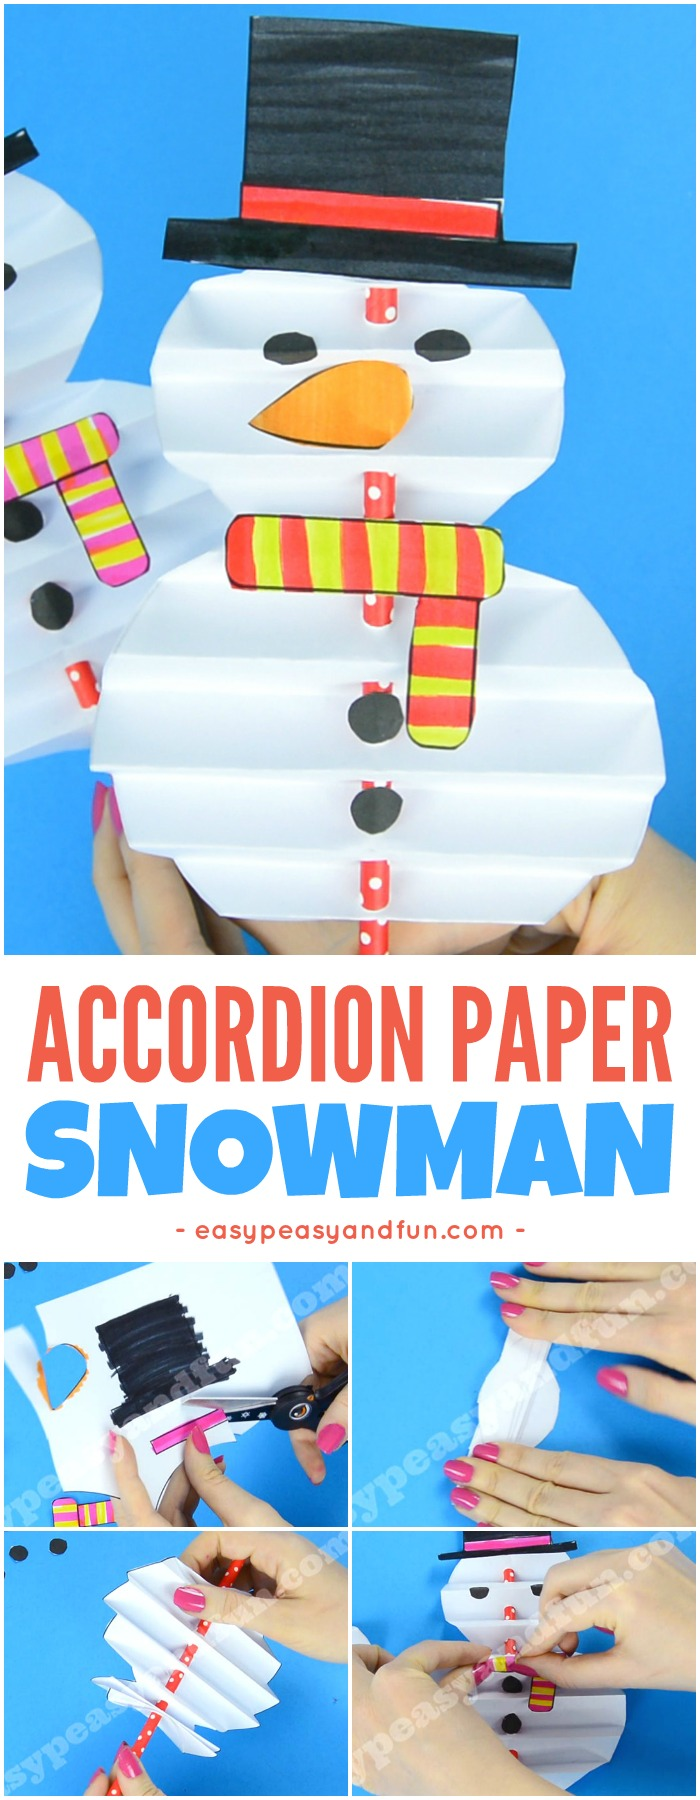 Simple Accordion Paper Snowman Craft for Kids. Super fun Winter craft idea for kids to make.